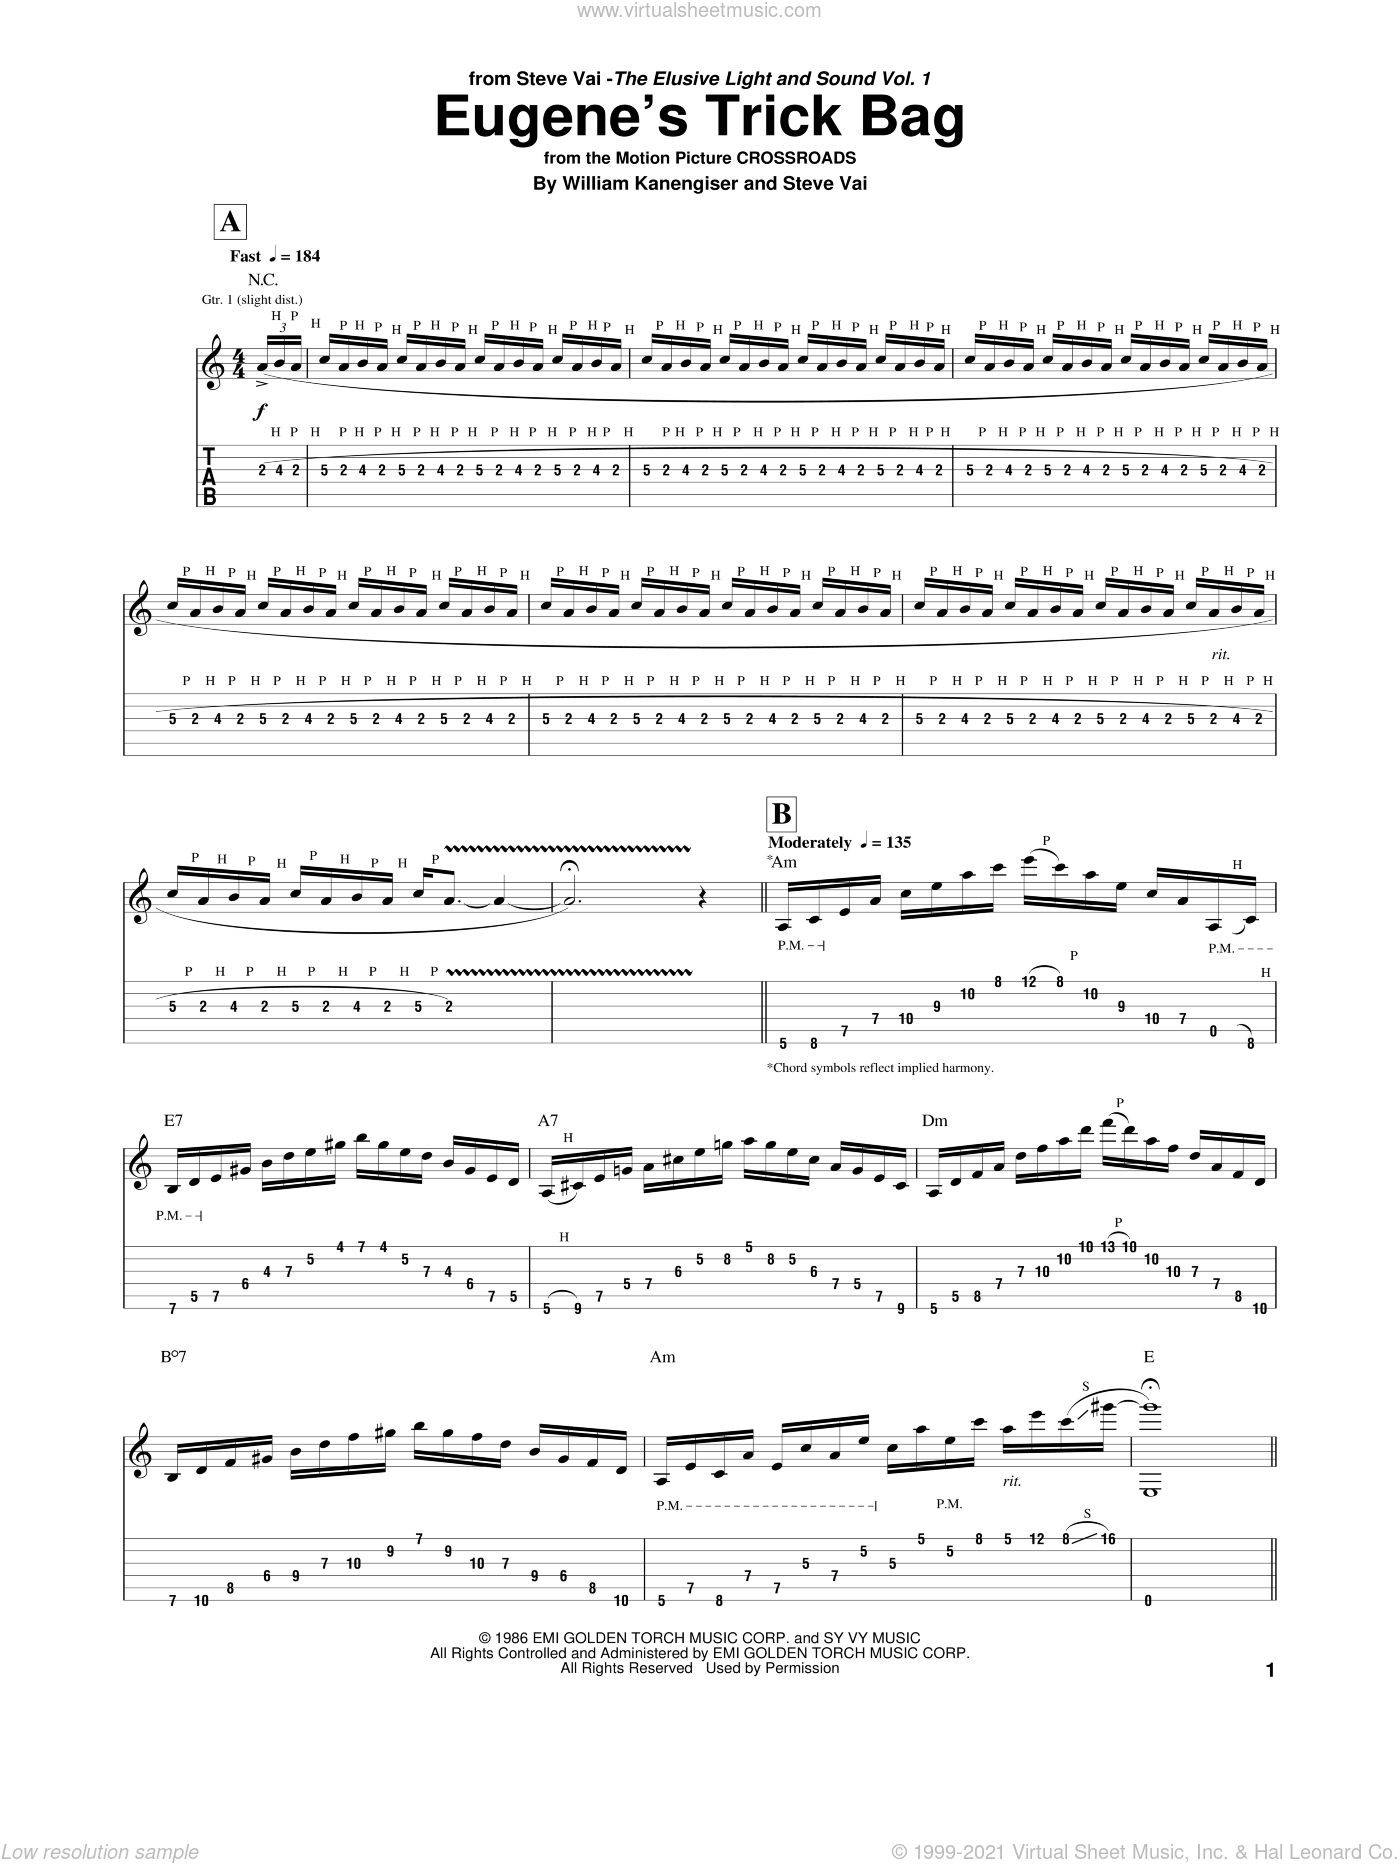 Eugene's Trick Bag sheet music for guitar (tablature) by Steve Vai and William Kanengiser, intermediate skill level